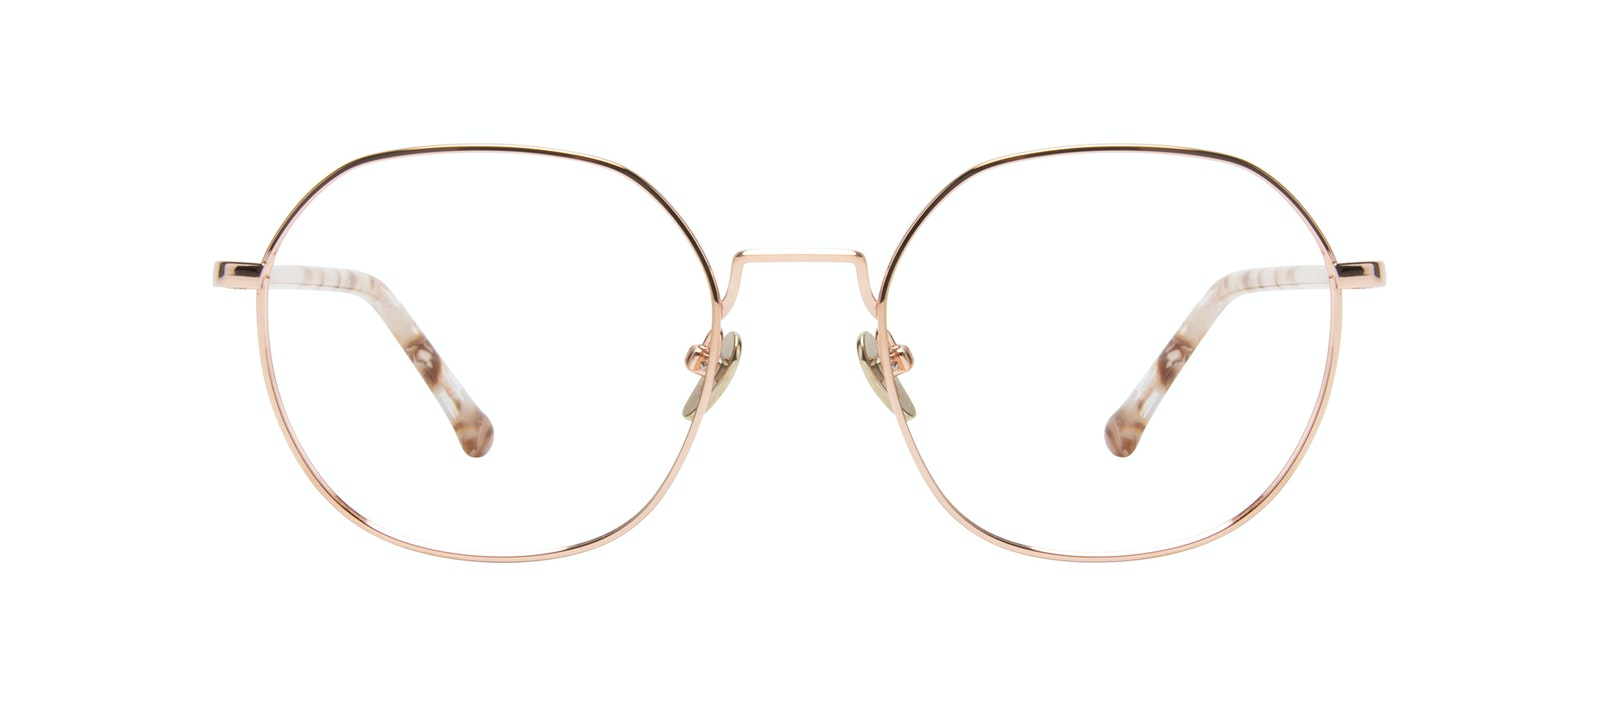 Affordable Fashion Glasses Round Eyeglasses Women Coco L Rose Gold Front